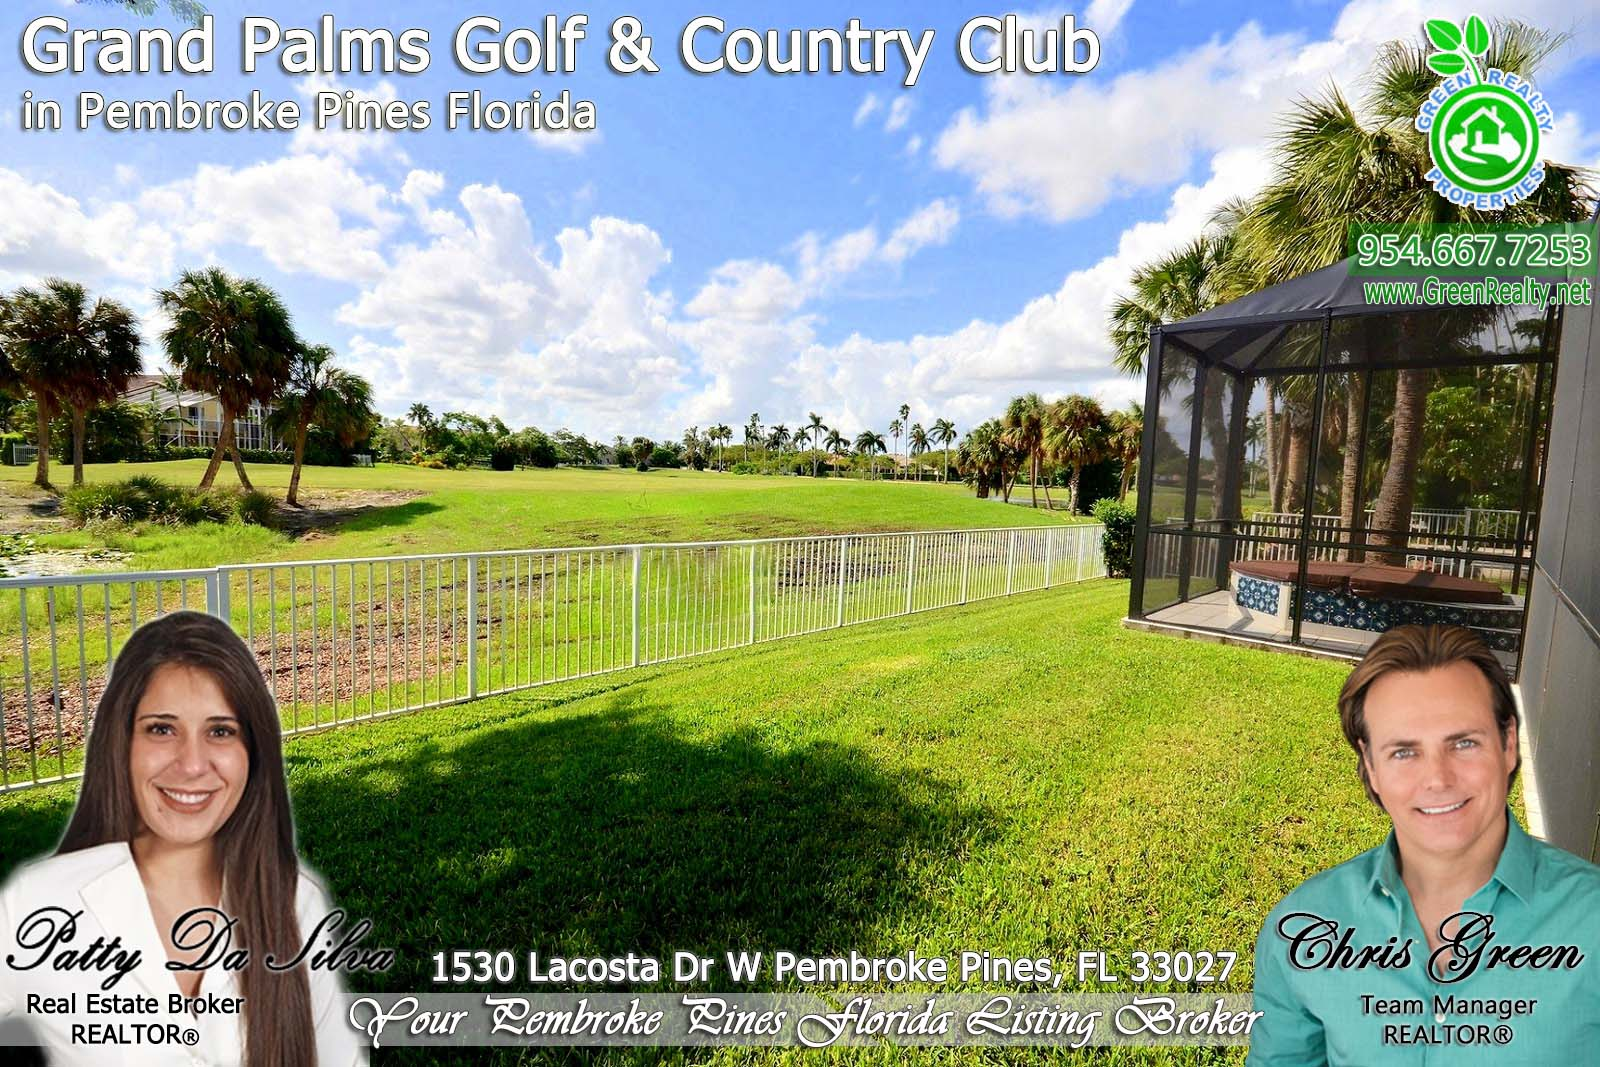 Pembroke Pines Grand Palms hHmes For Sale